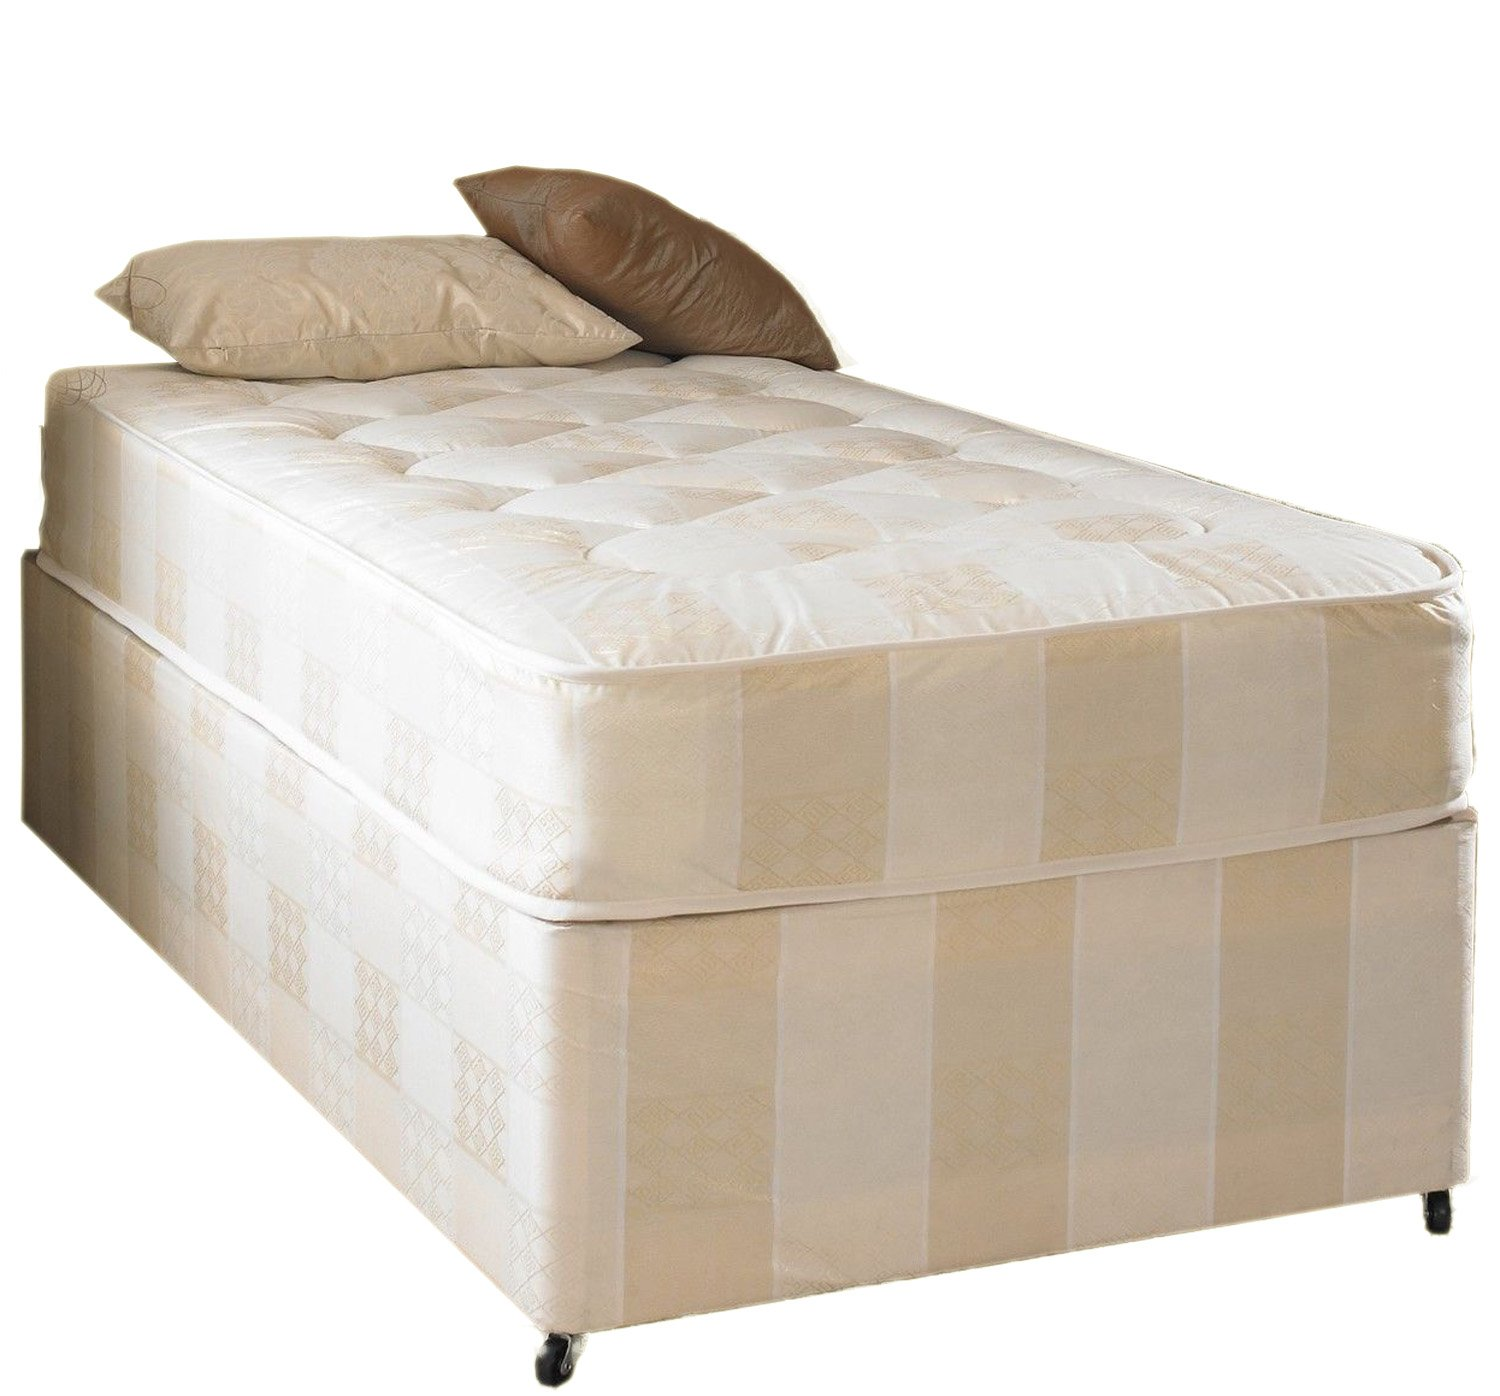 the latest ba9e0 05fcb Deep Quilt Divan Bed Including Deep Quilt Mattress (Available in 2'6 Small  Single - 3'0 Single - 3'6 Large Single - 4'0 Small Double - 4'6 Double - ...